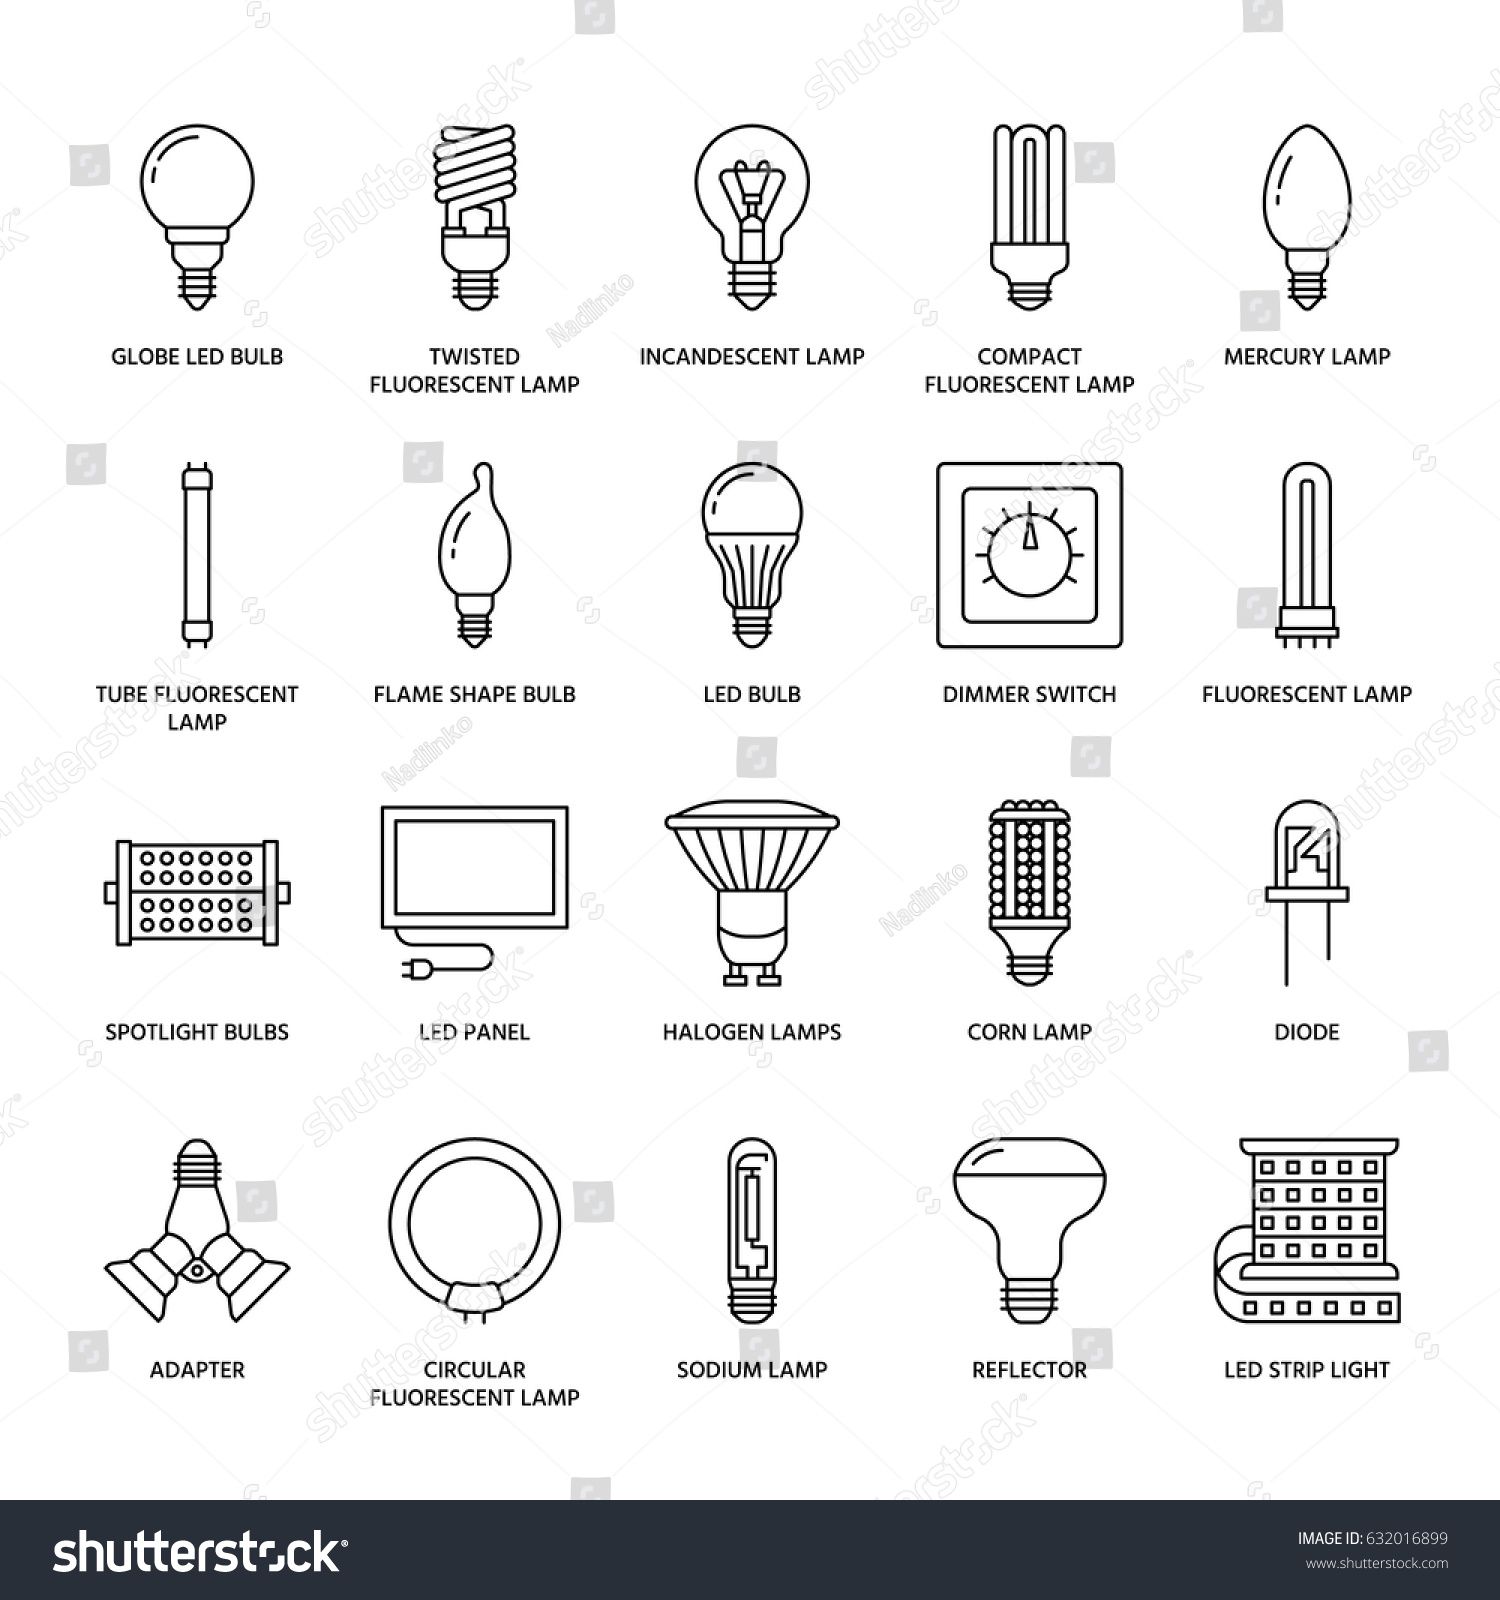 Light Bulbs Flat Line Icons Led Stock Vector 632016899